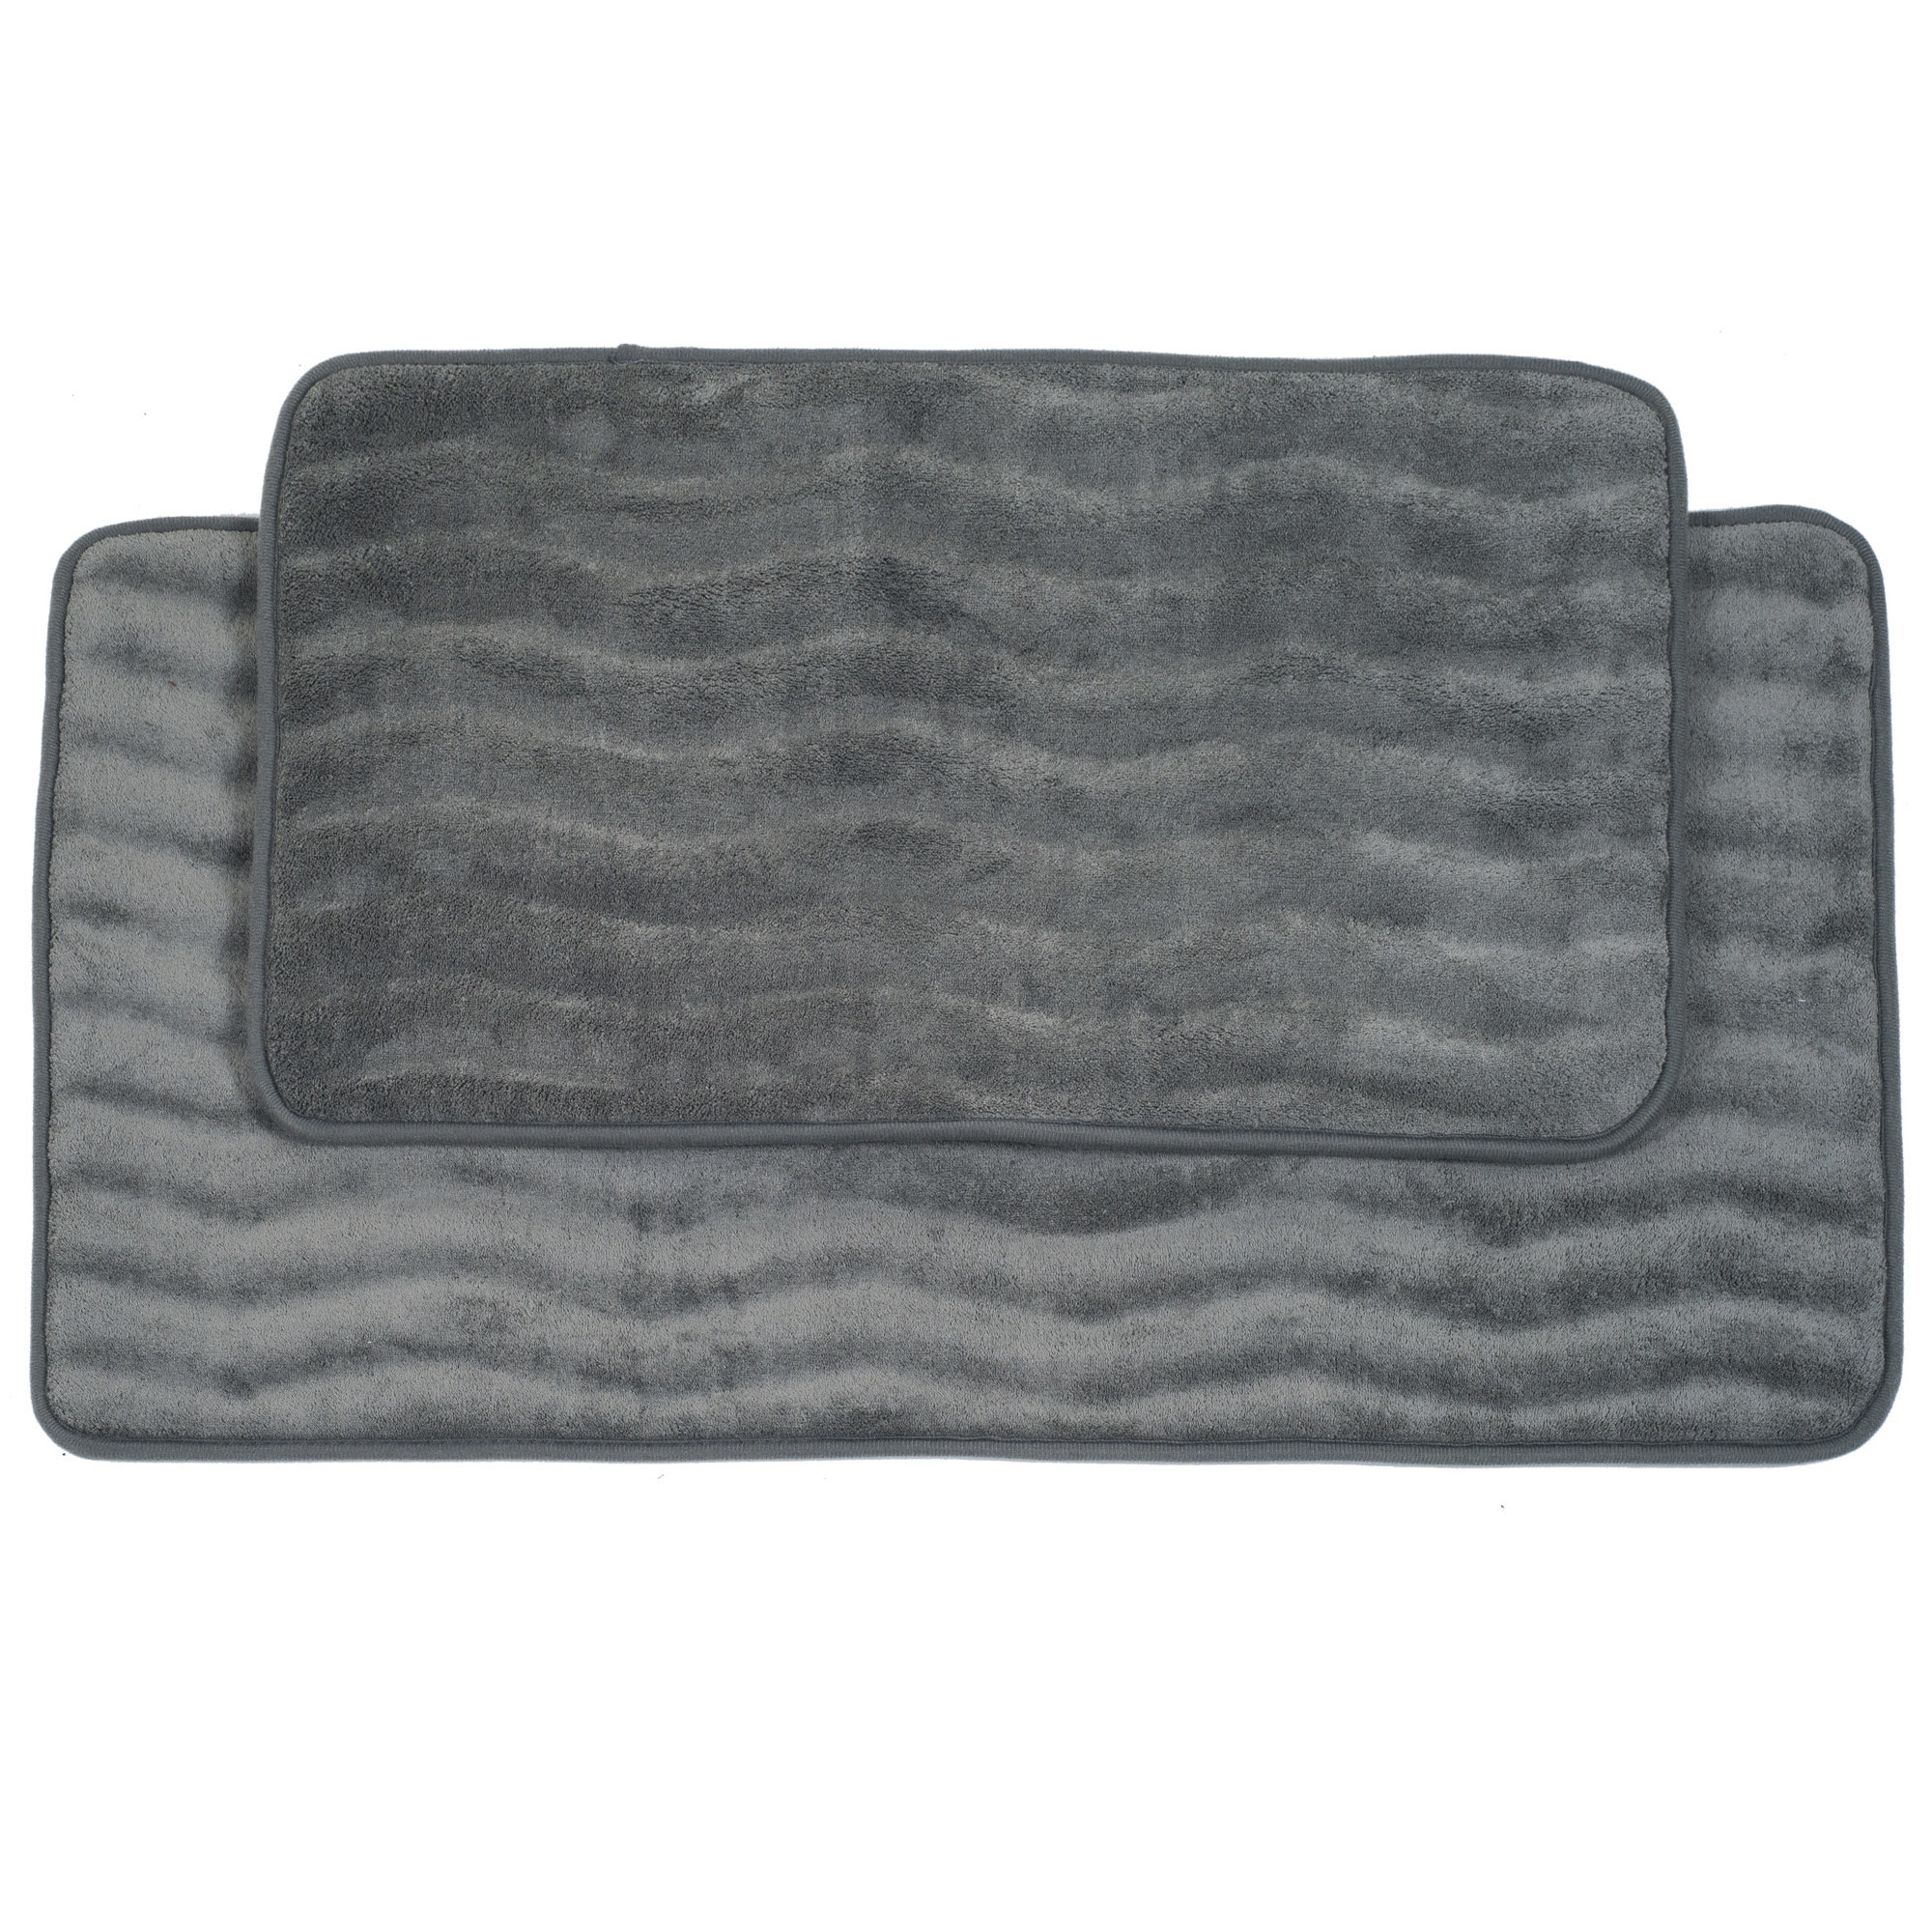 Grey Memory Foam Bath Mat Set